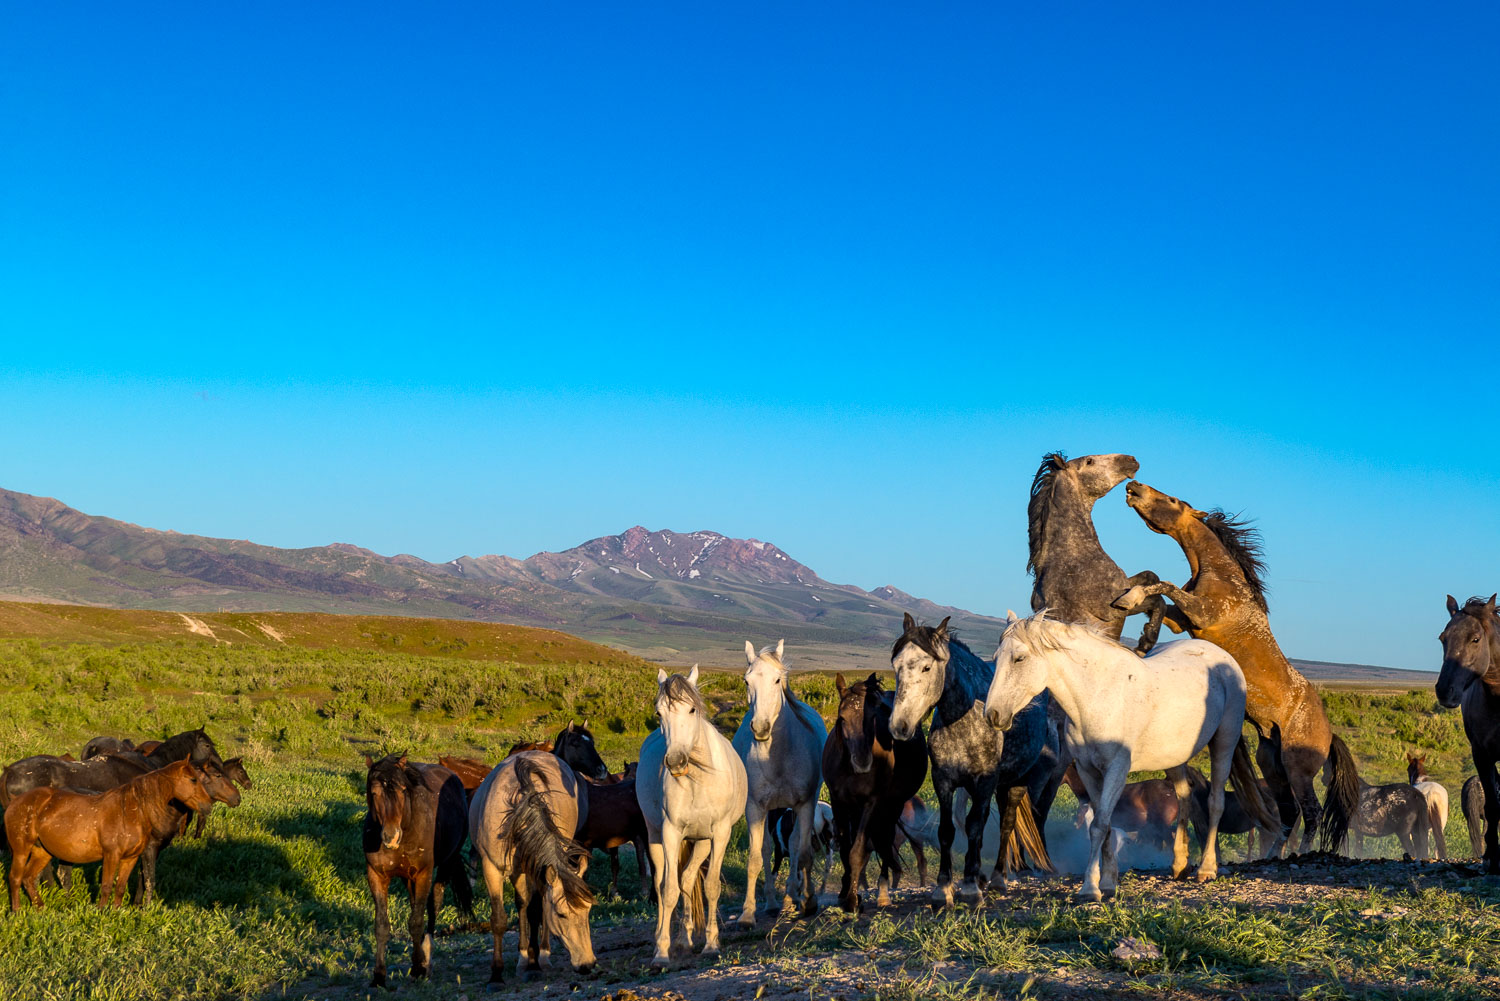 Wild Horses fighting for dominance over the Herd. Pony Express